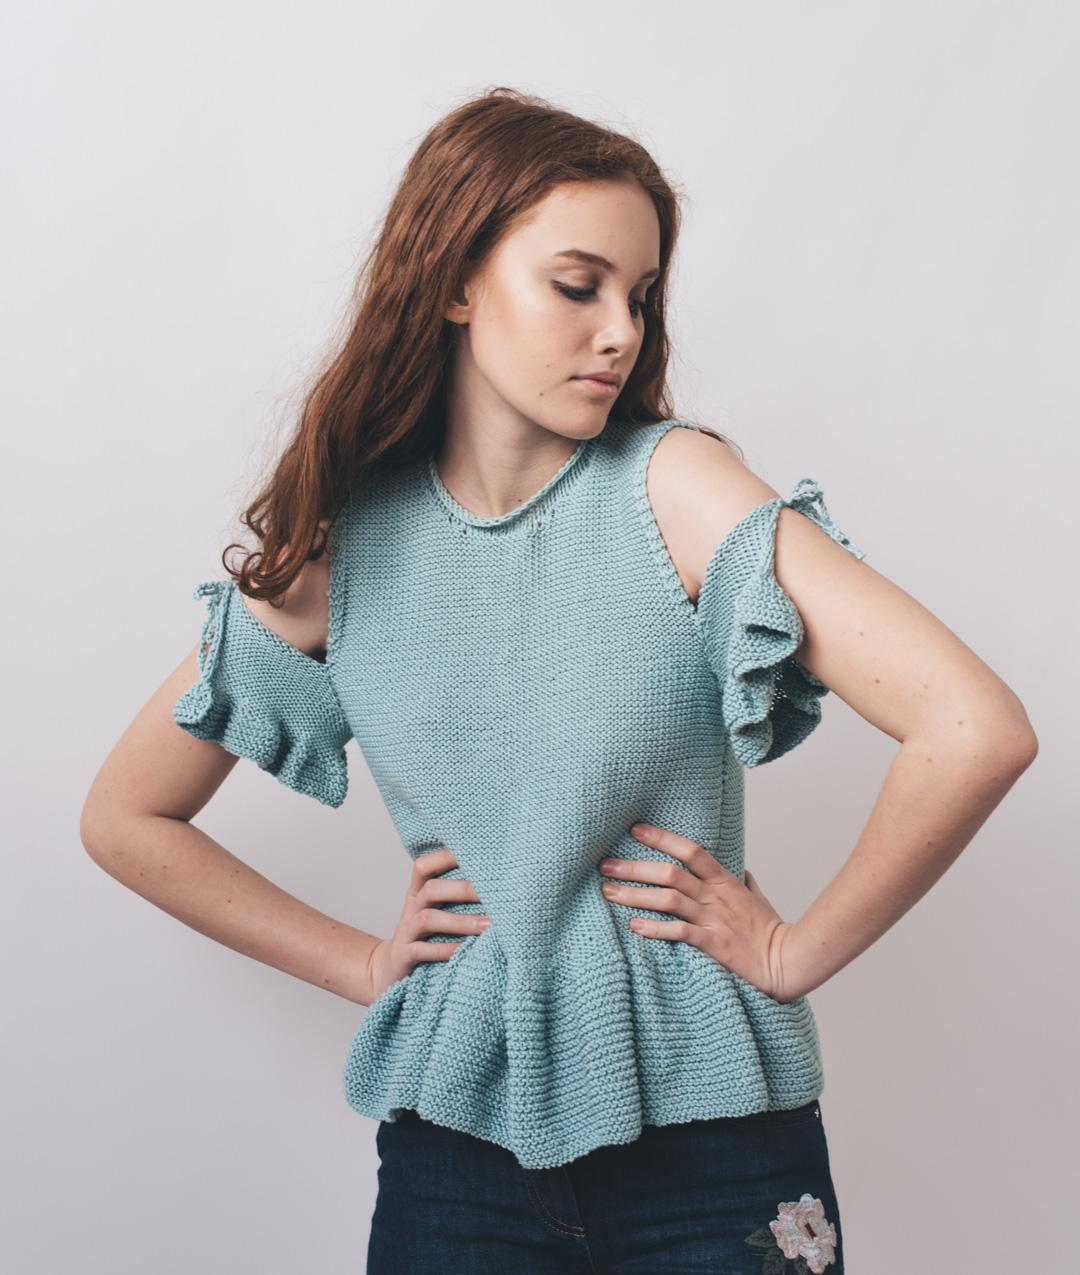 Dress - CottonSweaters and Tops - Cotton - AMALFI TOP - 1